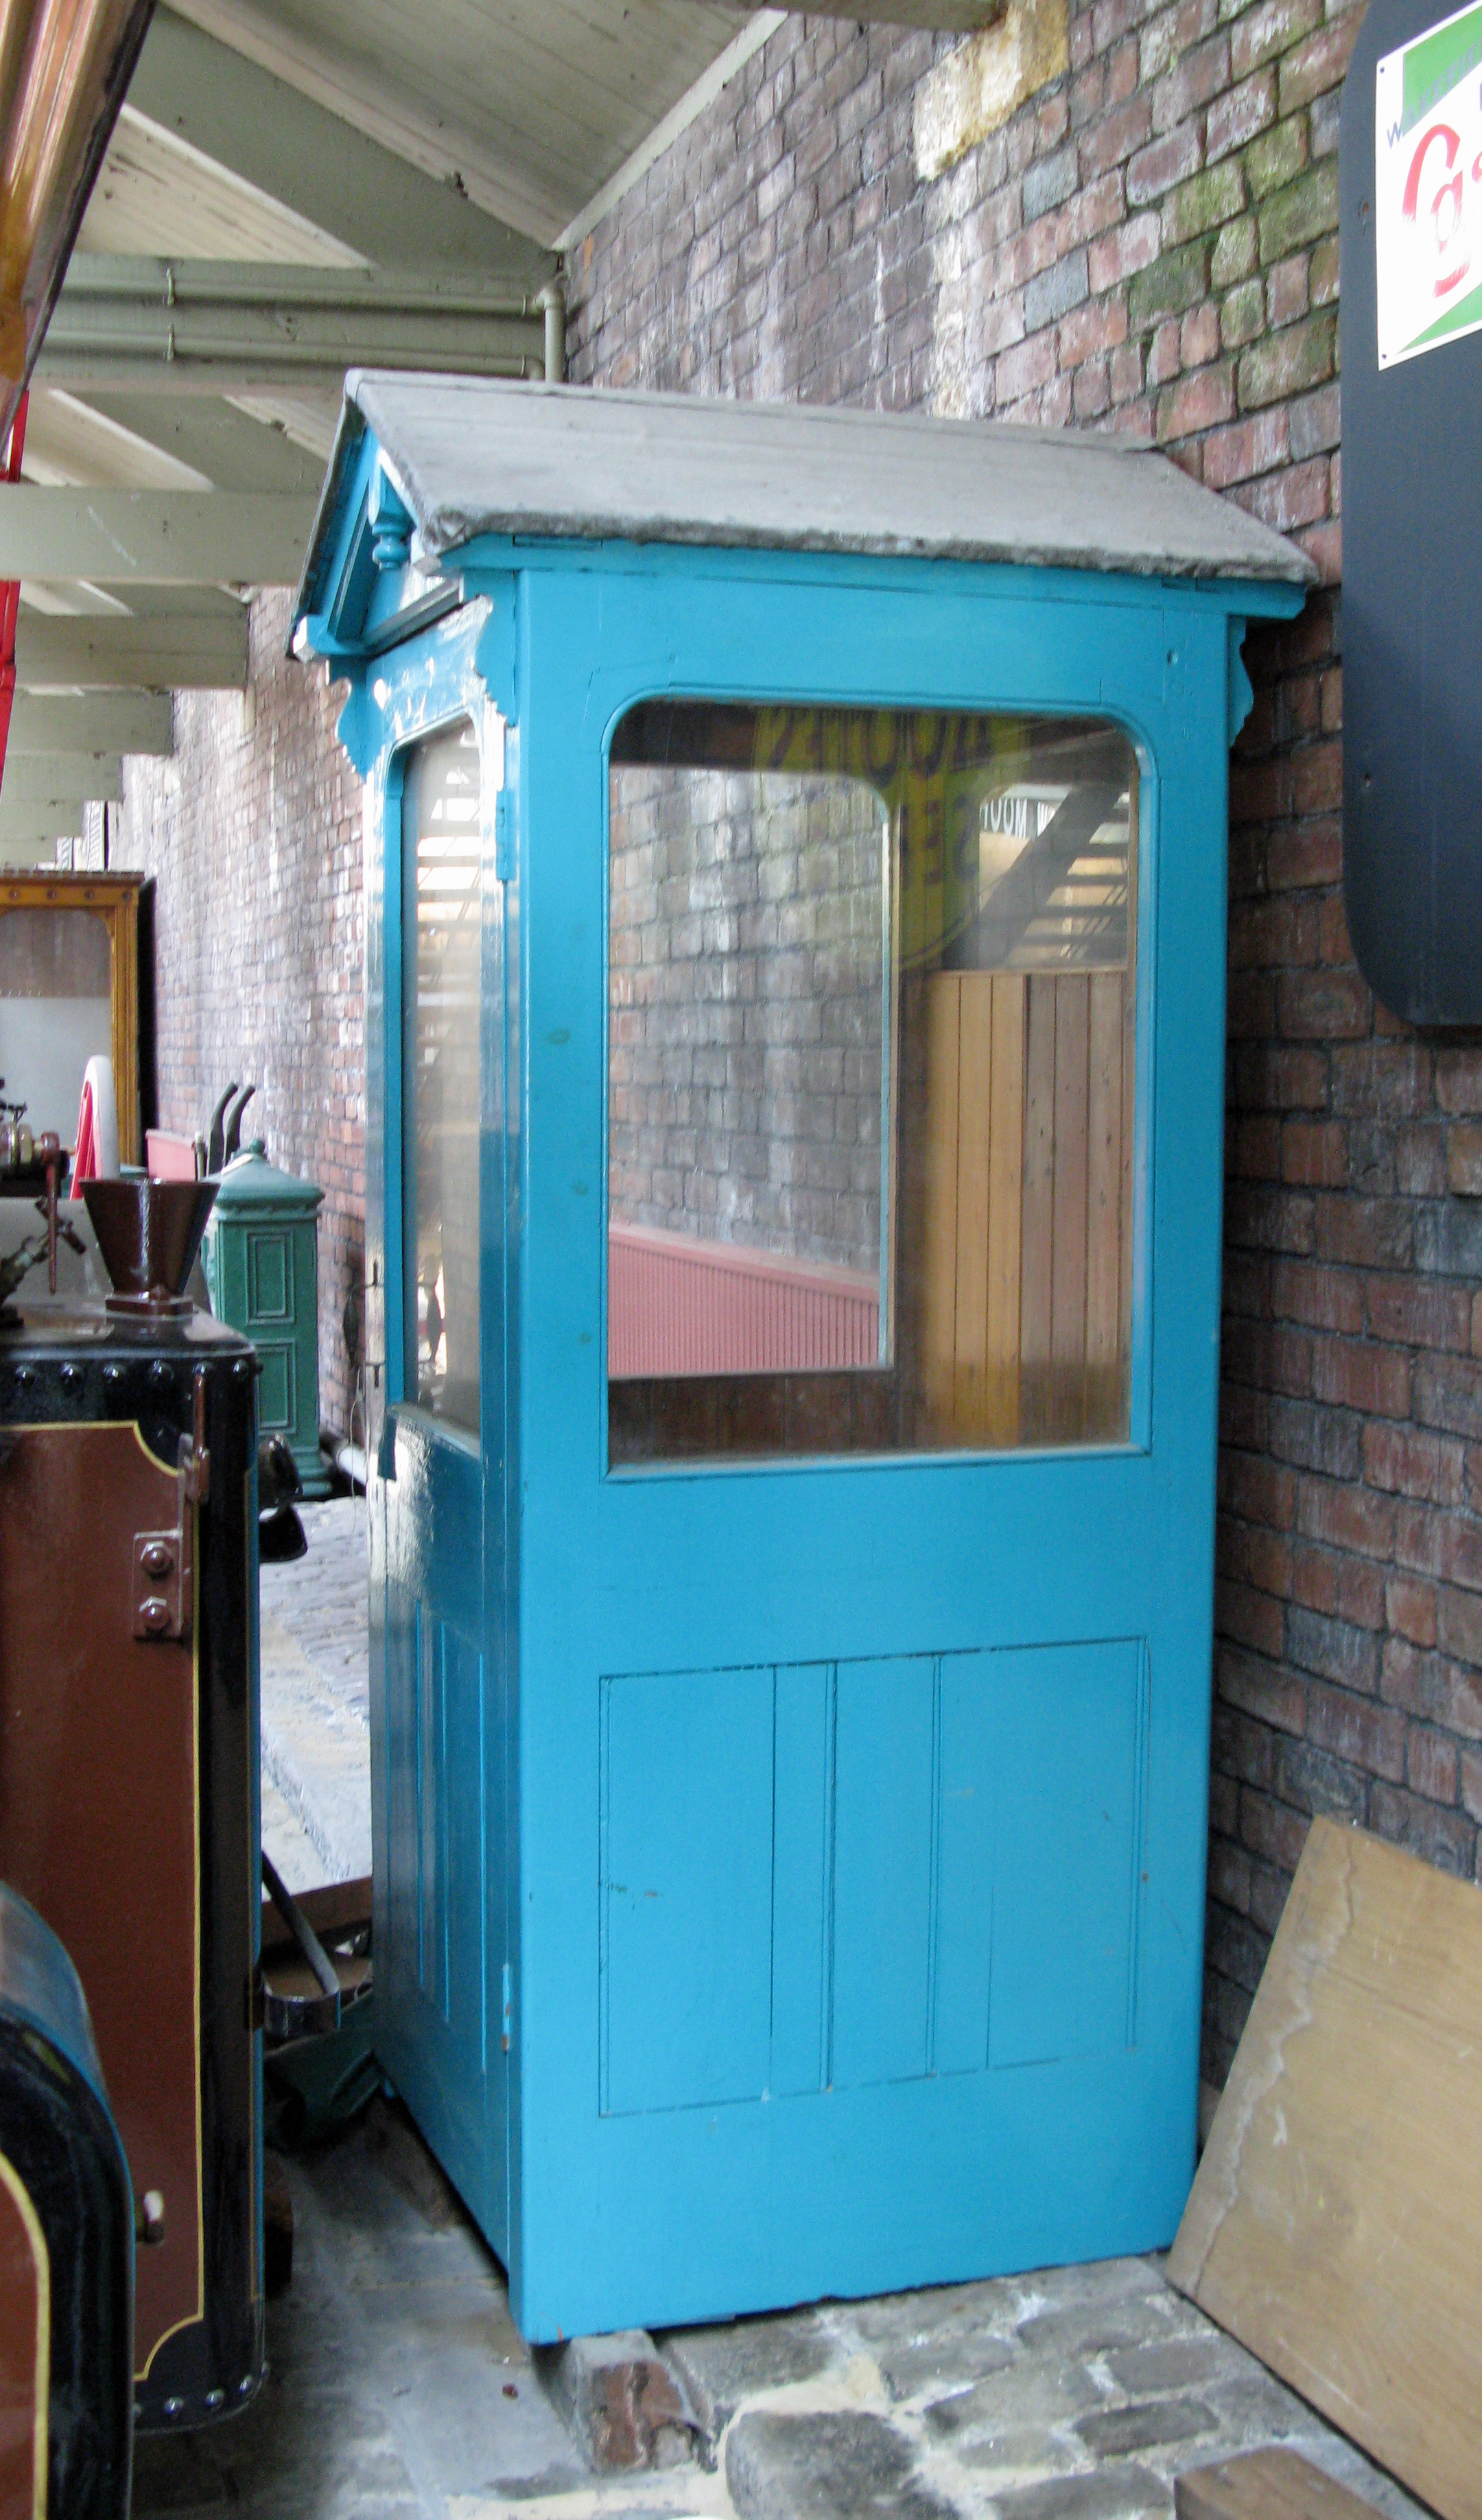 An extremely rare example of a wooden contruct 'Wilson' telephone kiosk, dating from prior to the First World War. Bradford Industrial Museum